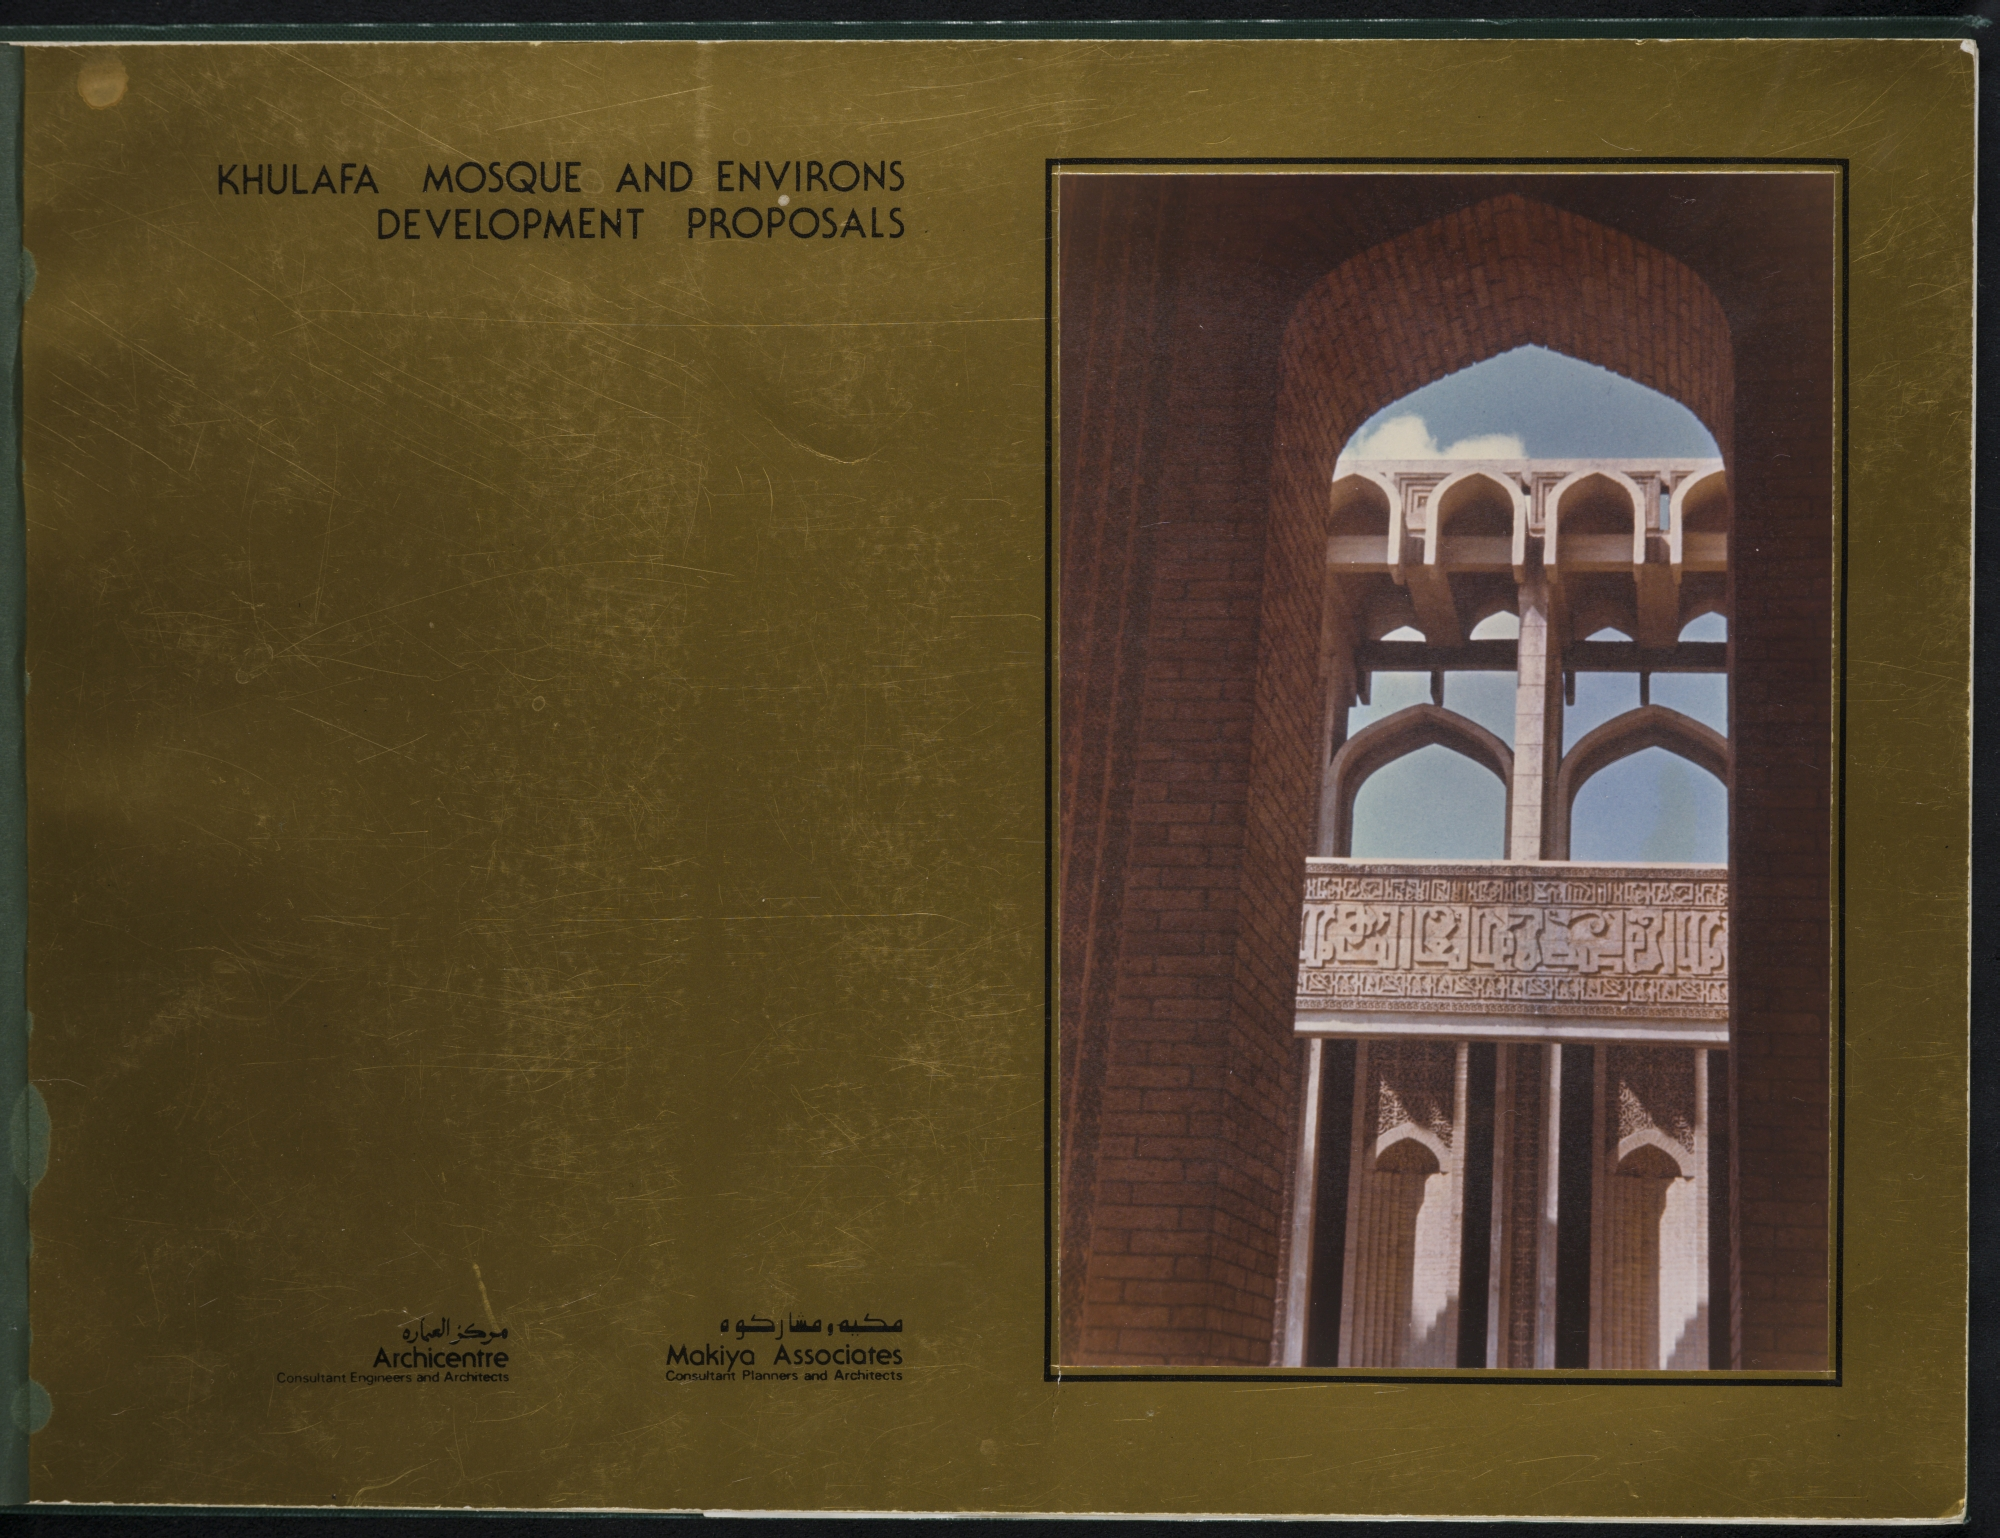 Makiya Associates and Archicentre. Khulafa Mosque and Environs Development Proposal. London: Makiya Associates, 1981. http://archnet.org/collections/123/publications/8799